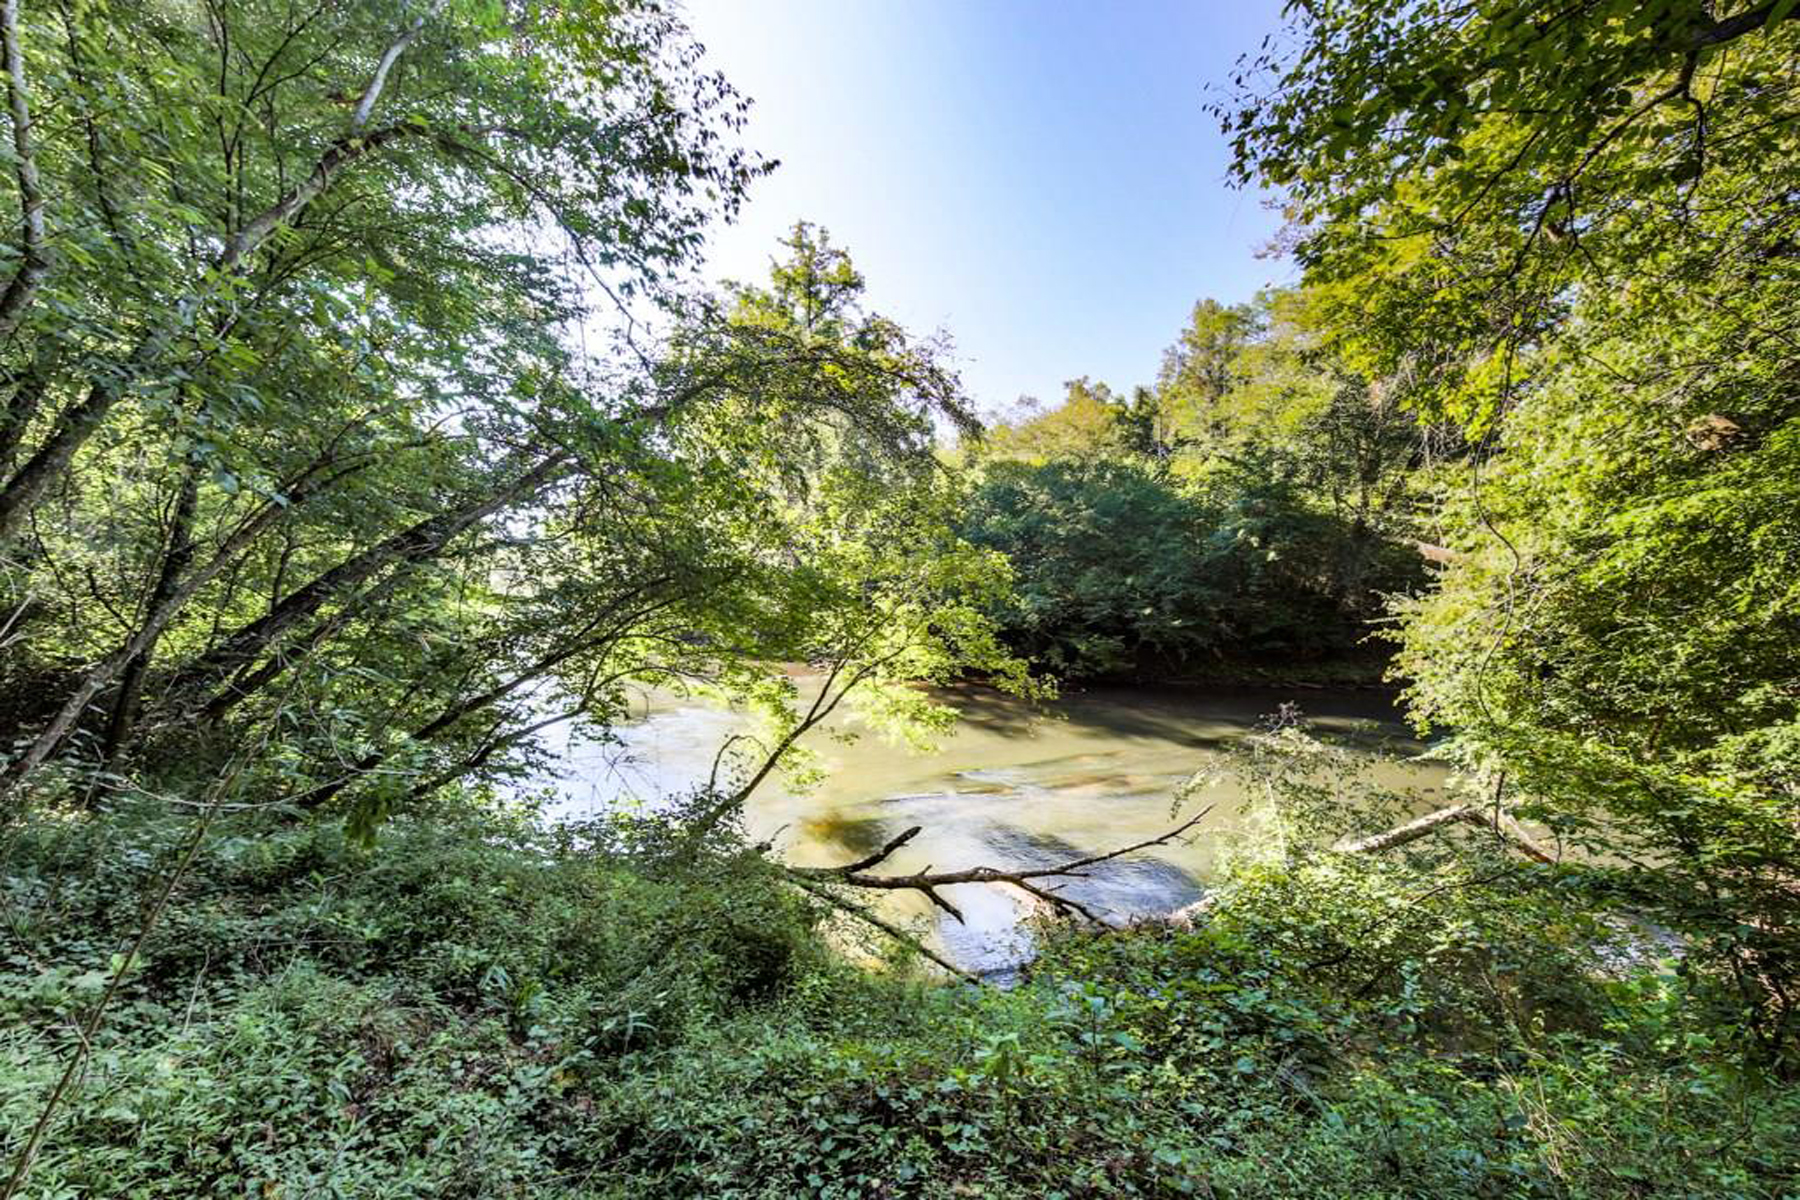 Land for Sale at Gorgeous Etowah River Frontage And 25,000 Acre Dawson Forest Access 0 Etowah Overlook Road, Dawsonville, Georgia 30534 United States